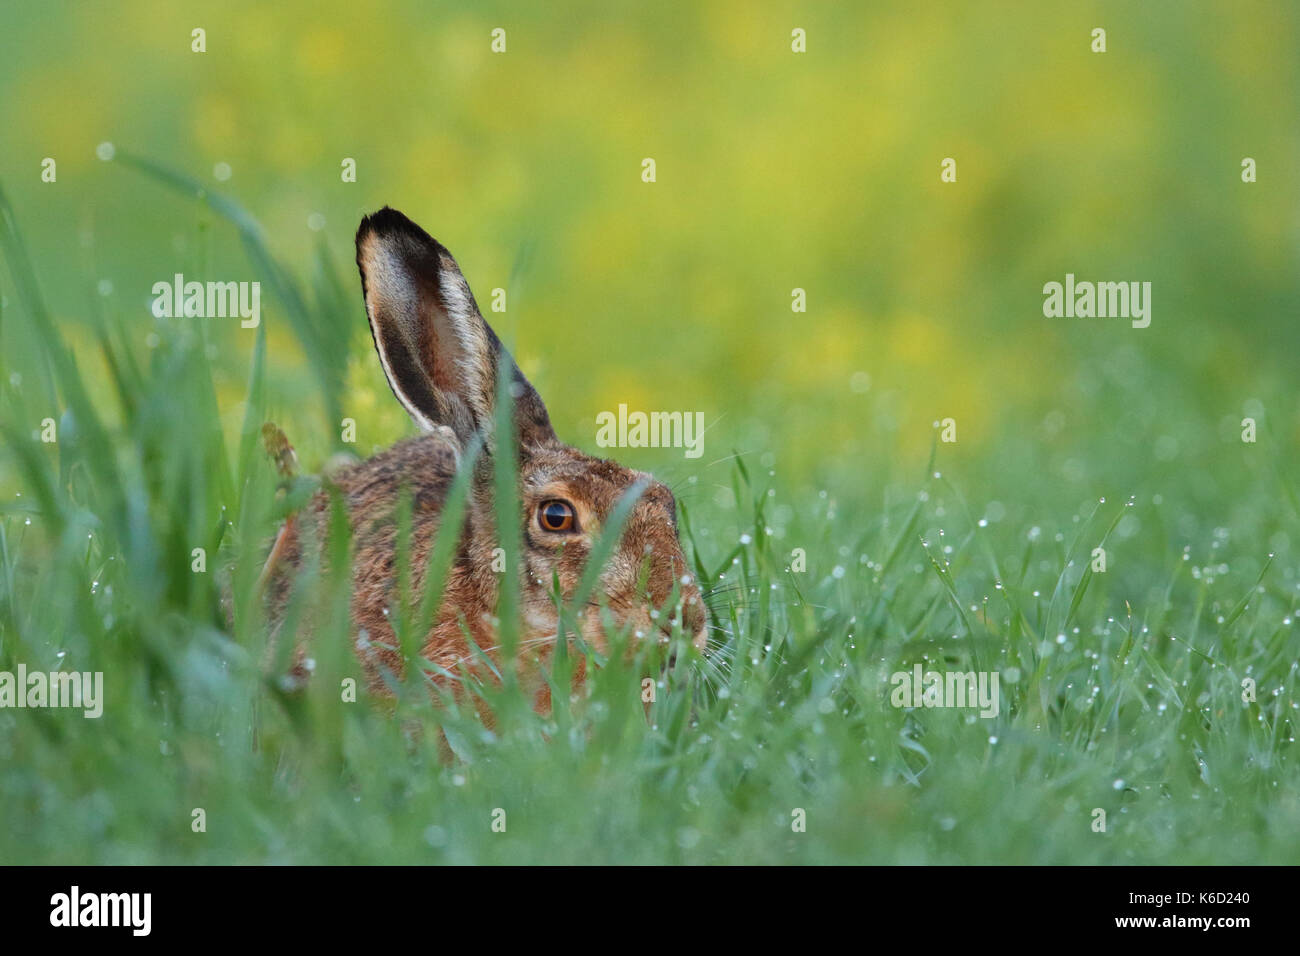 European Brown Hare (Lepus europaeus) assis dans un champ humide de rosée. L'Europe Photo Stock